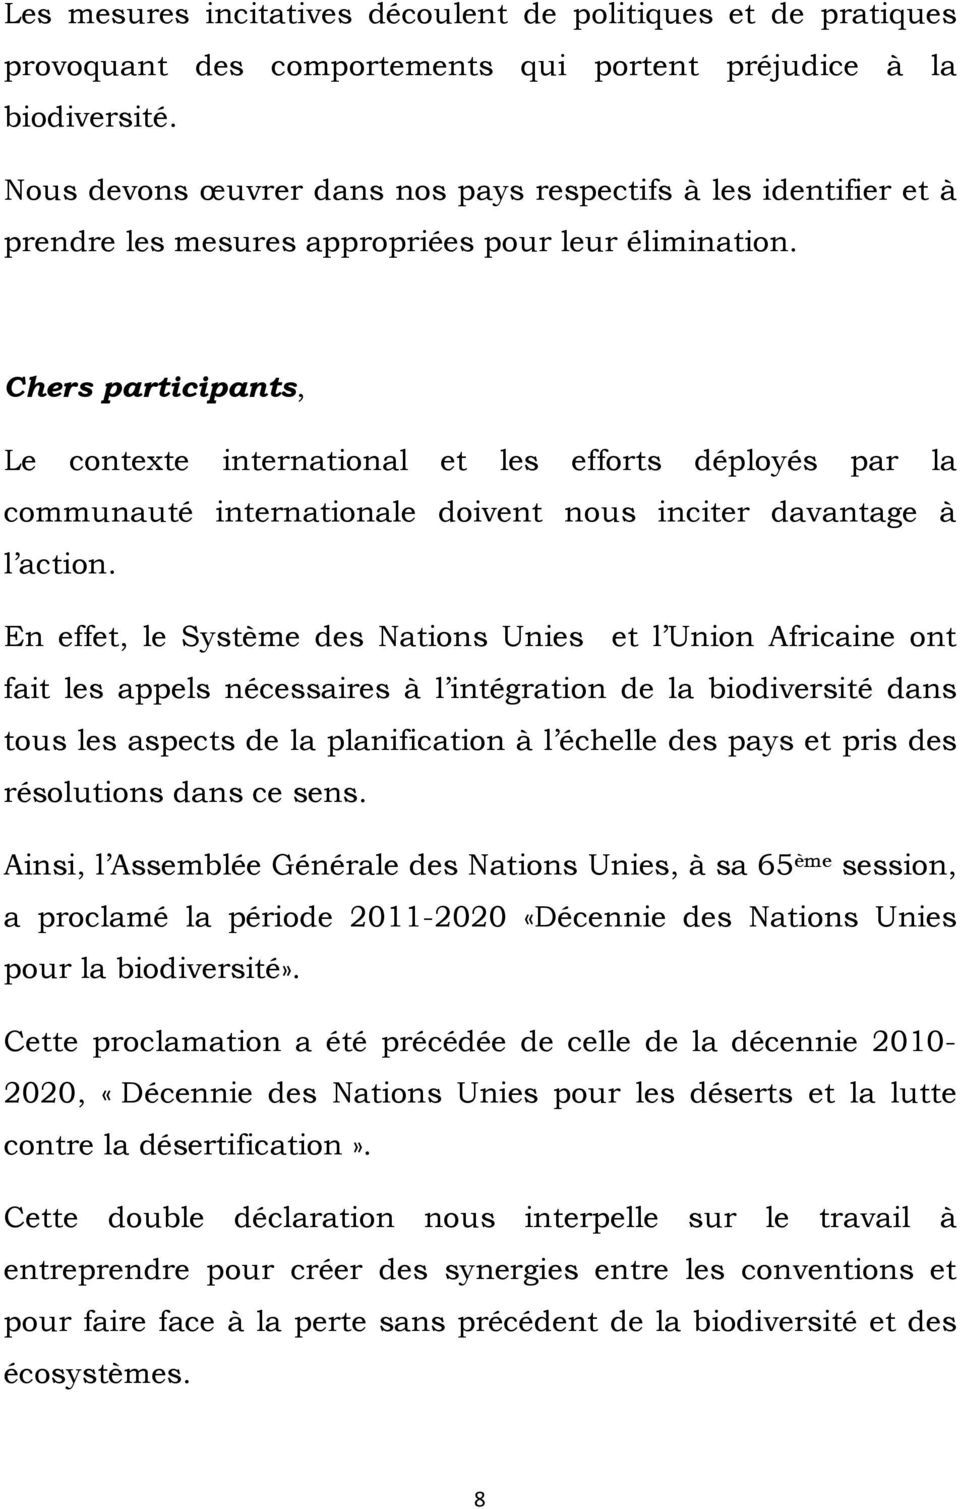 Chers participants, Le contexte international et les efforts déployés par la communauté internationale doivent nous inciter davantage à l action.